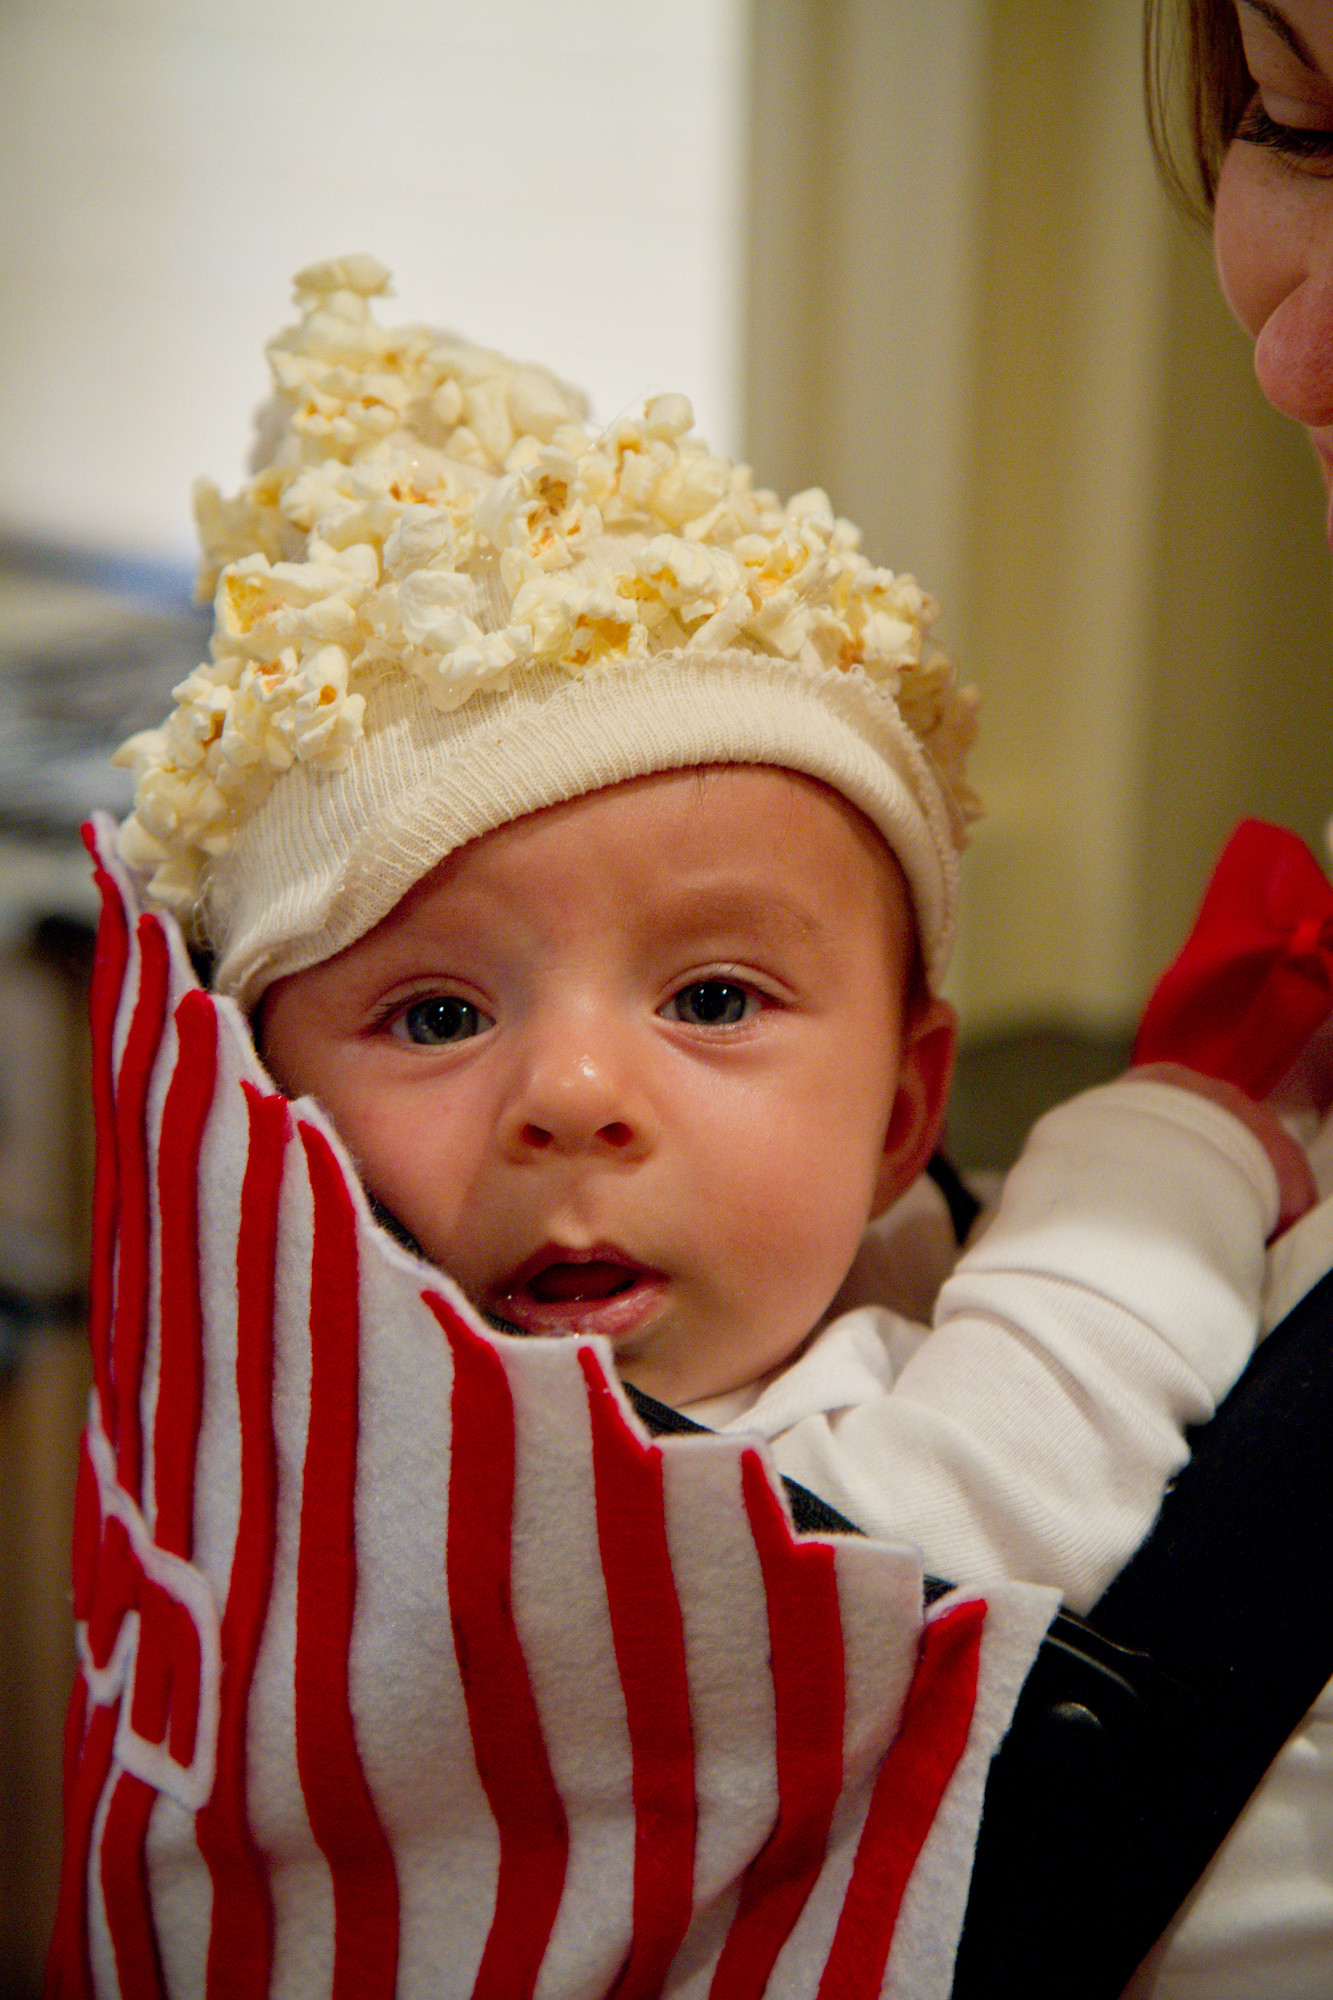 Best ideas about DIY Baby Costume . Save or Pin 301 Moved Permanently Now.